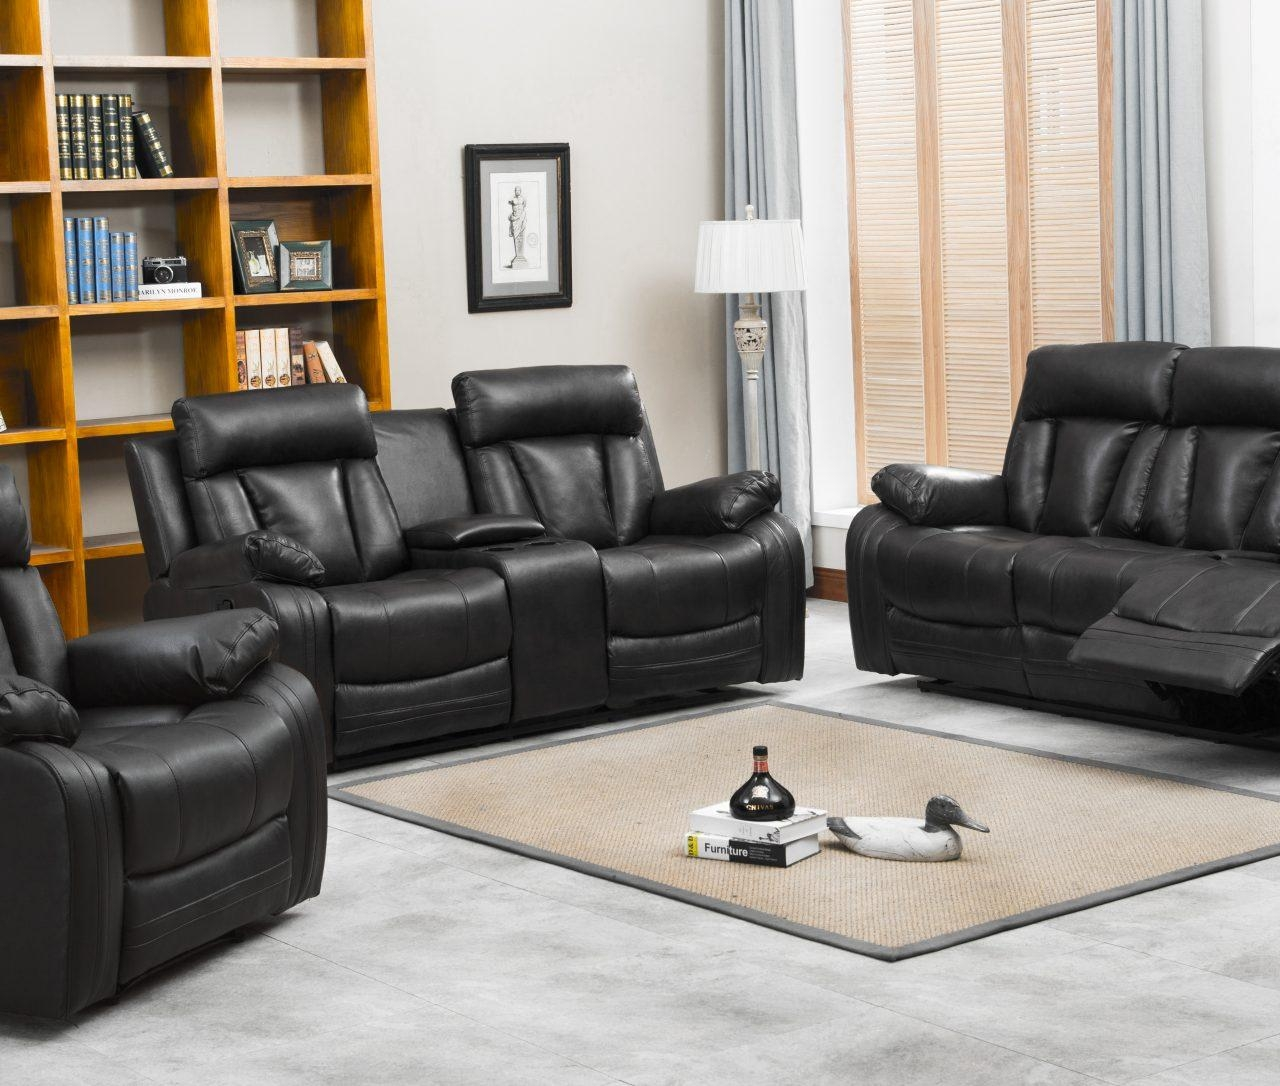 Naples Reclining Sofa & Loveseat W/cupholders And Console Set with Reclining Sofas And Loveseats Sets